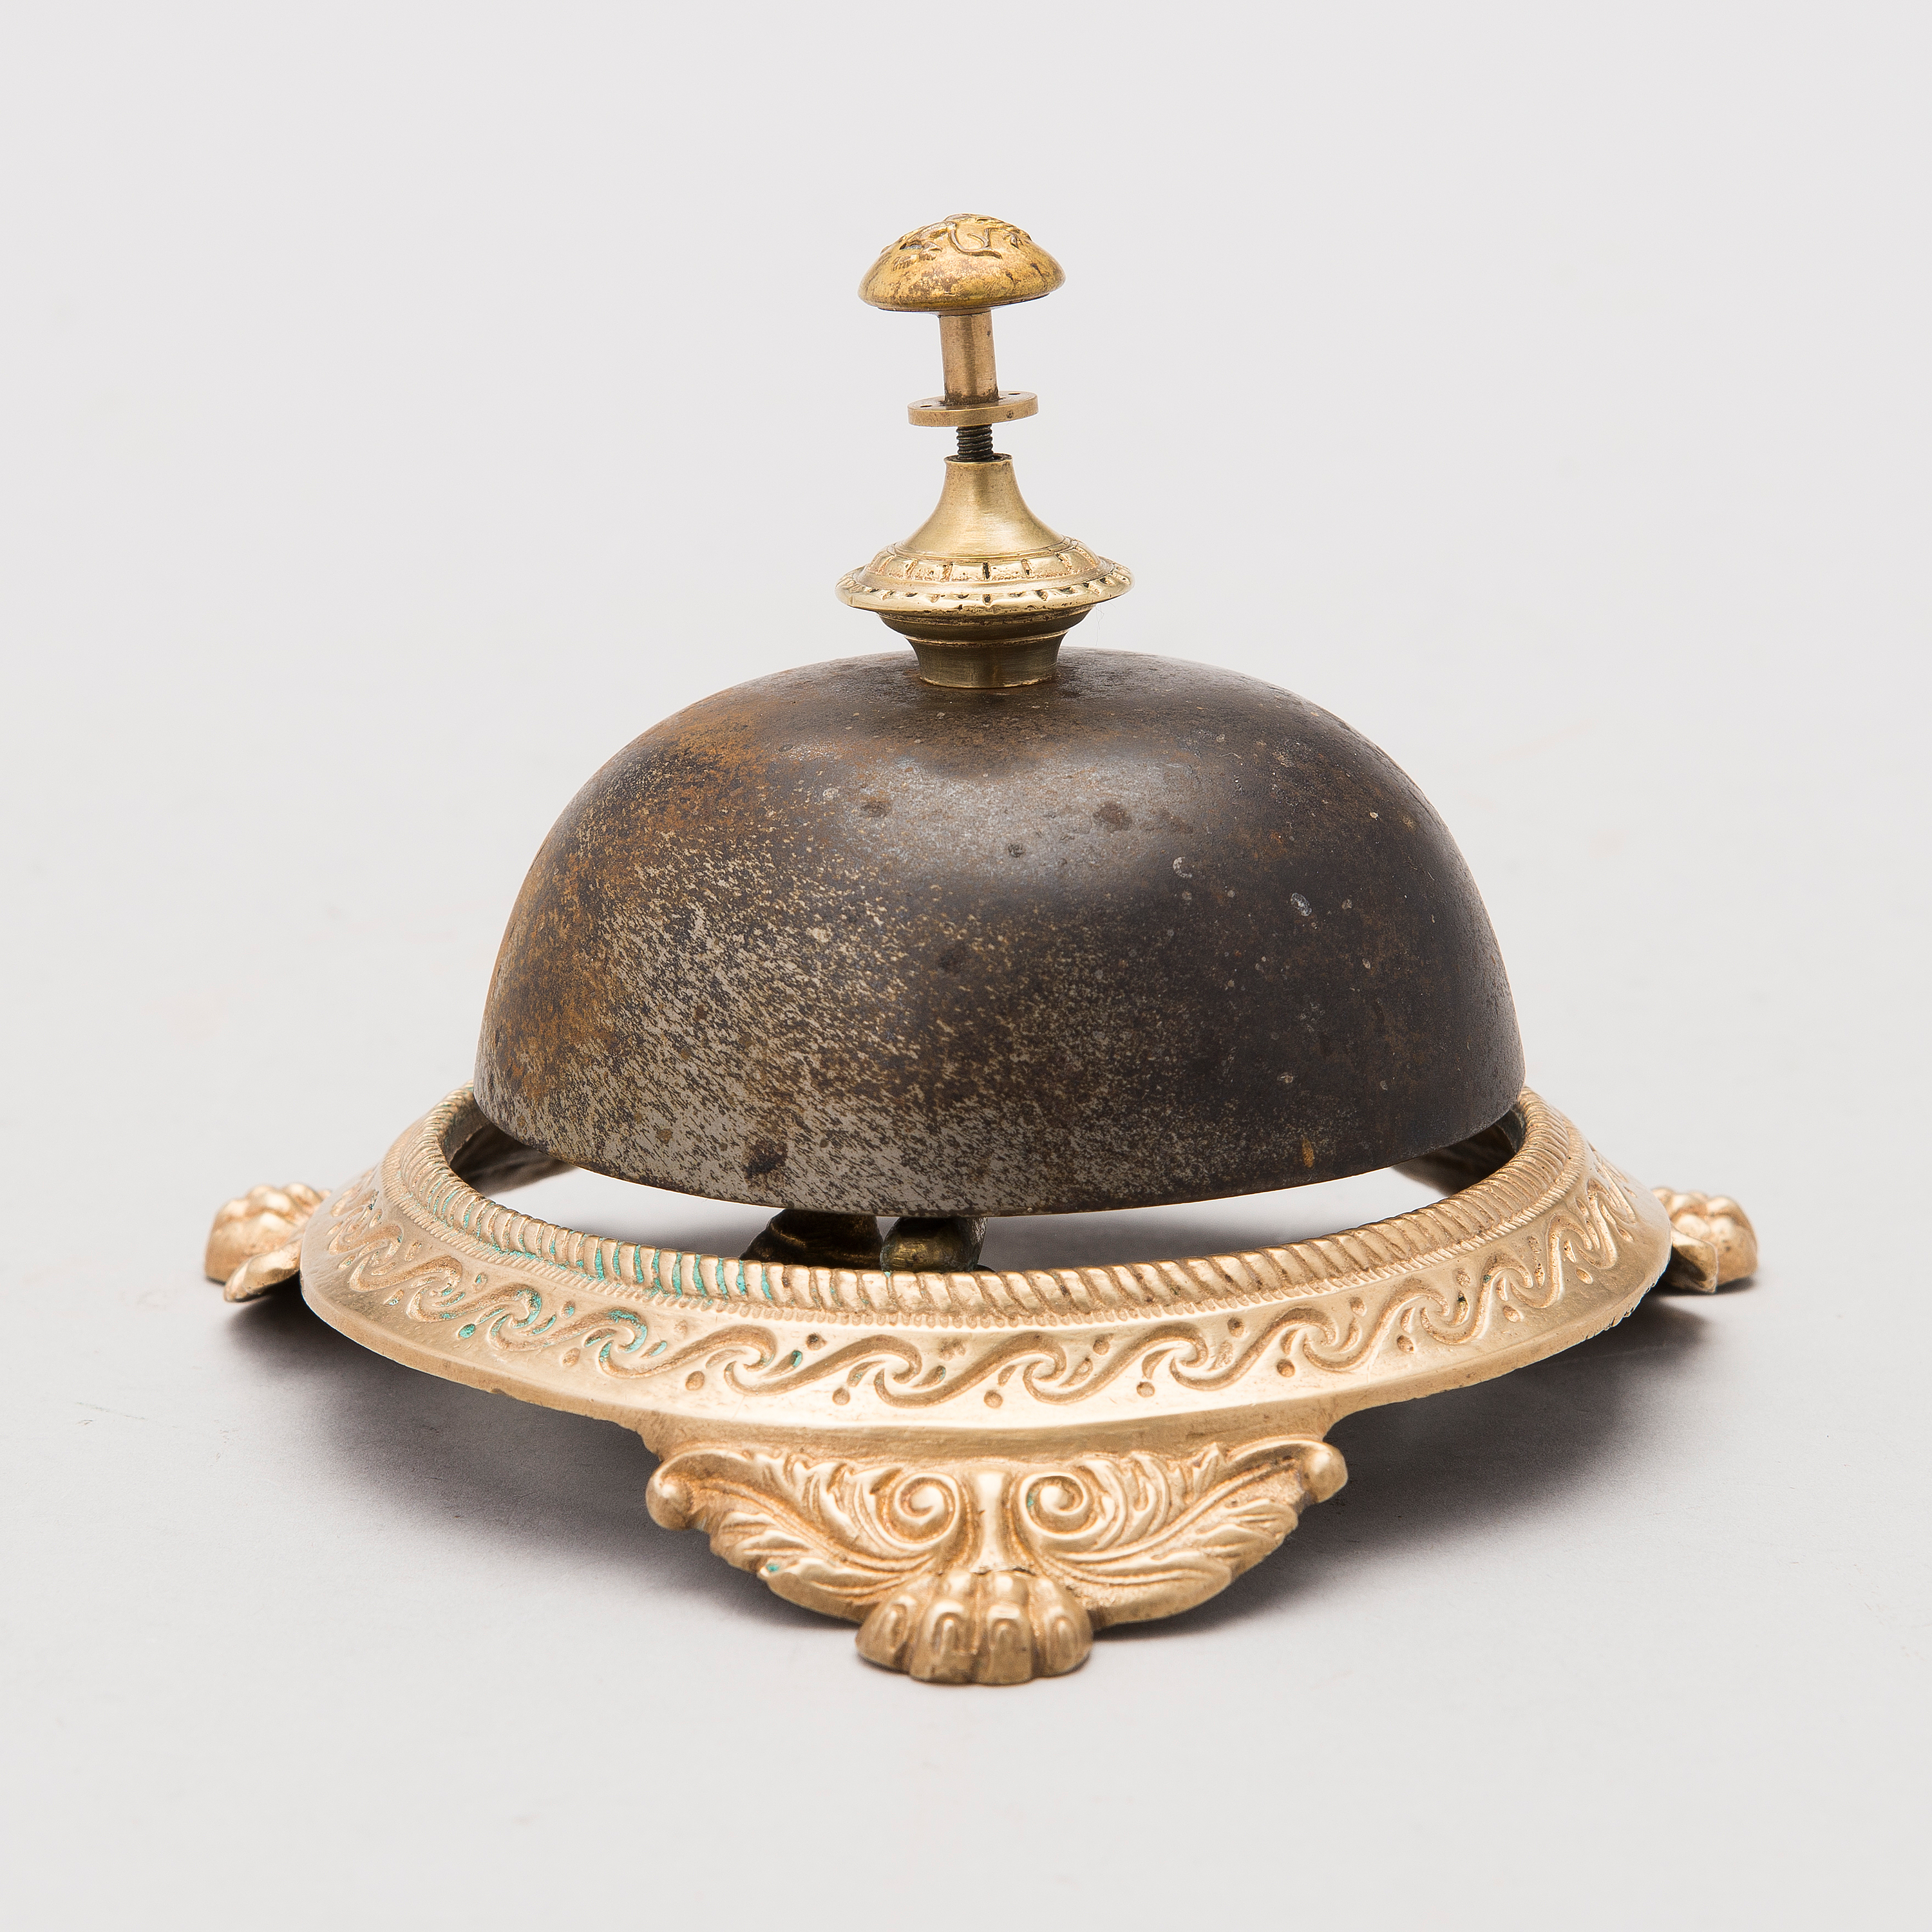 Super Front Desk Bell From The End Of The 19Th Century Bukowskis Home Interior And Landscaping Oversignezvosmurscom